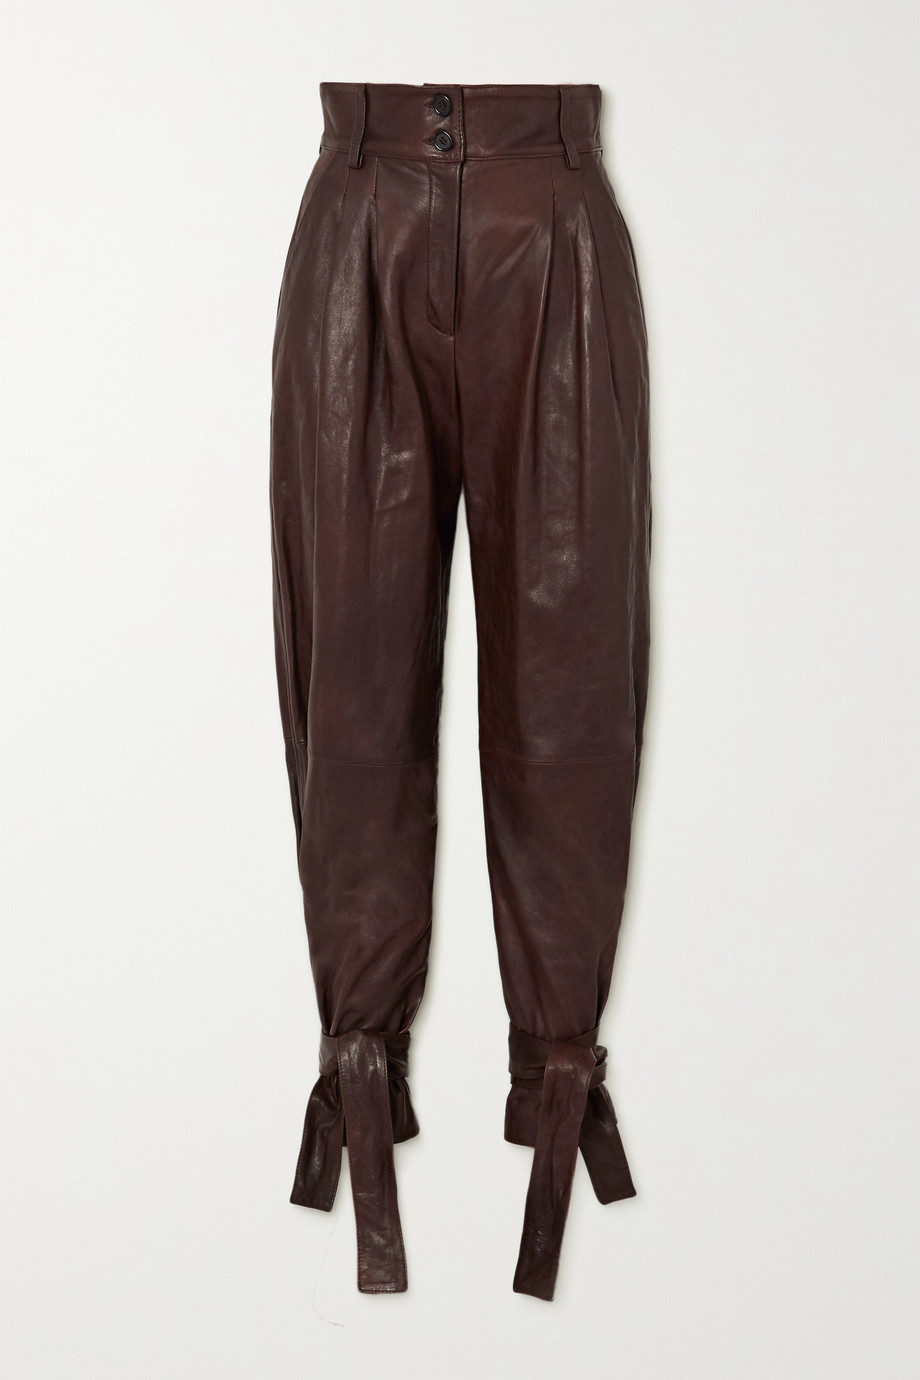 Dolce & Gabbana Tie-detailed leather tapered pants